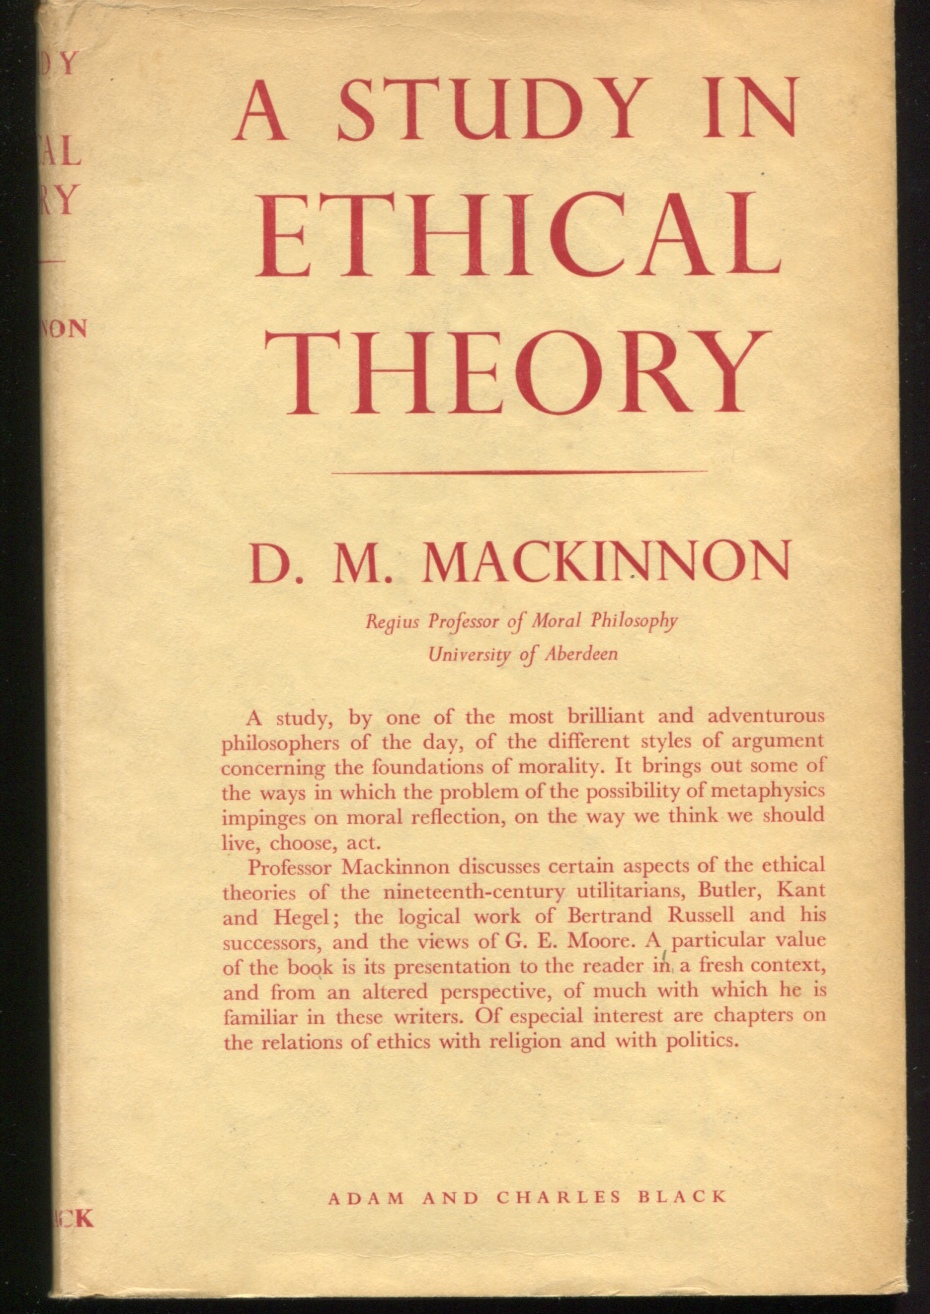 A Study In Ethical Theory.